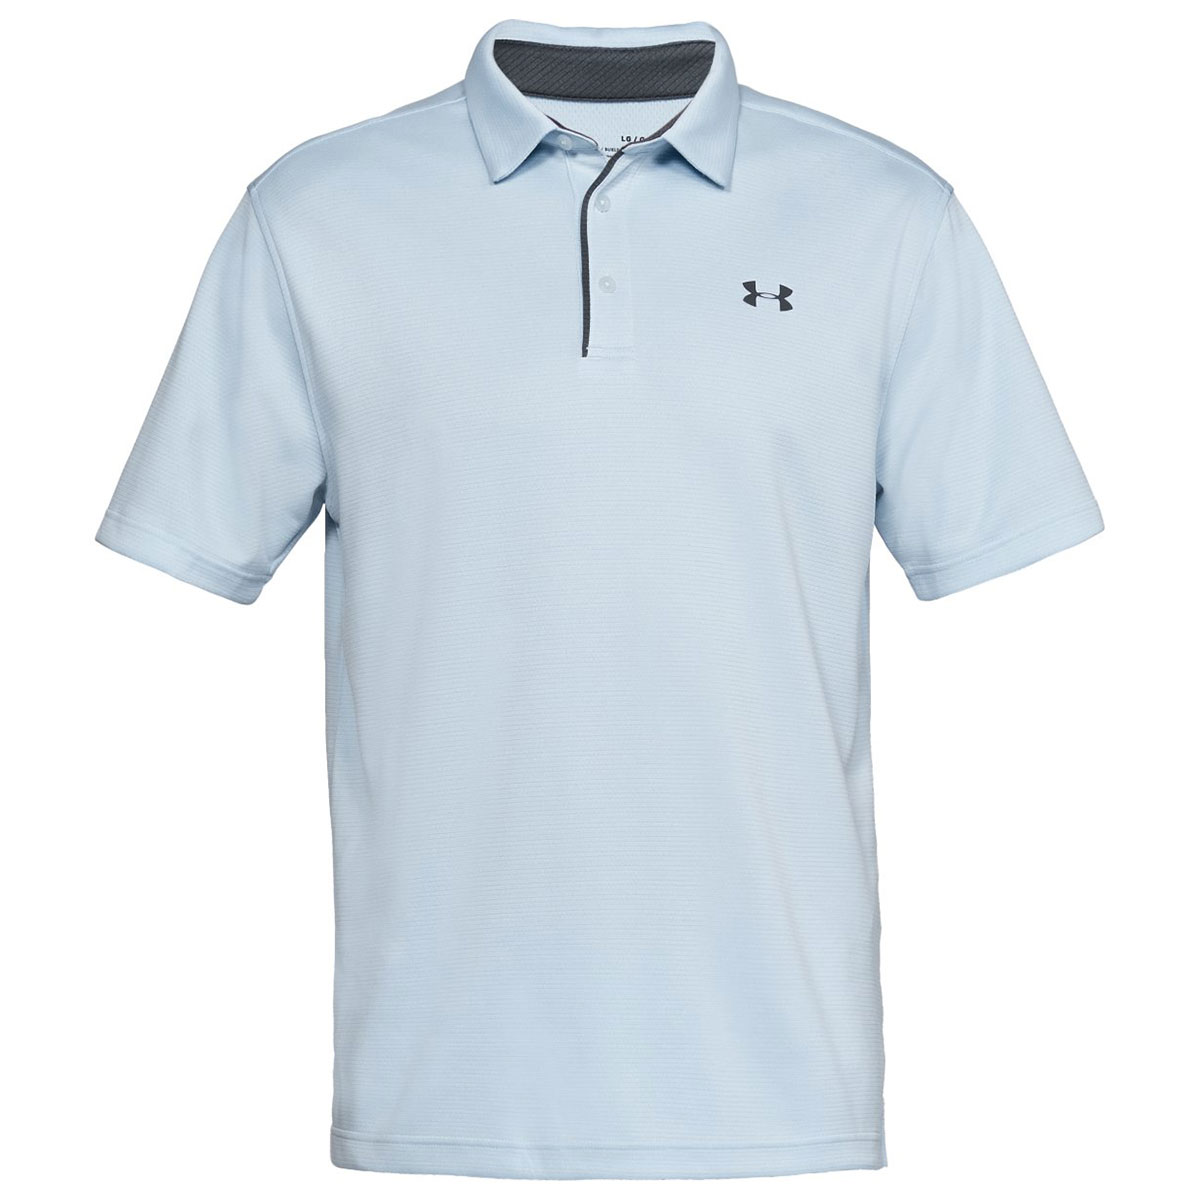 Under-Armour-Mens-2019-Golf-Tech-Wicking-Textured-Soft-Light-Polo-Shirt thumbnail 26